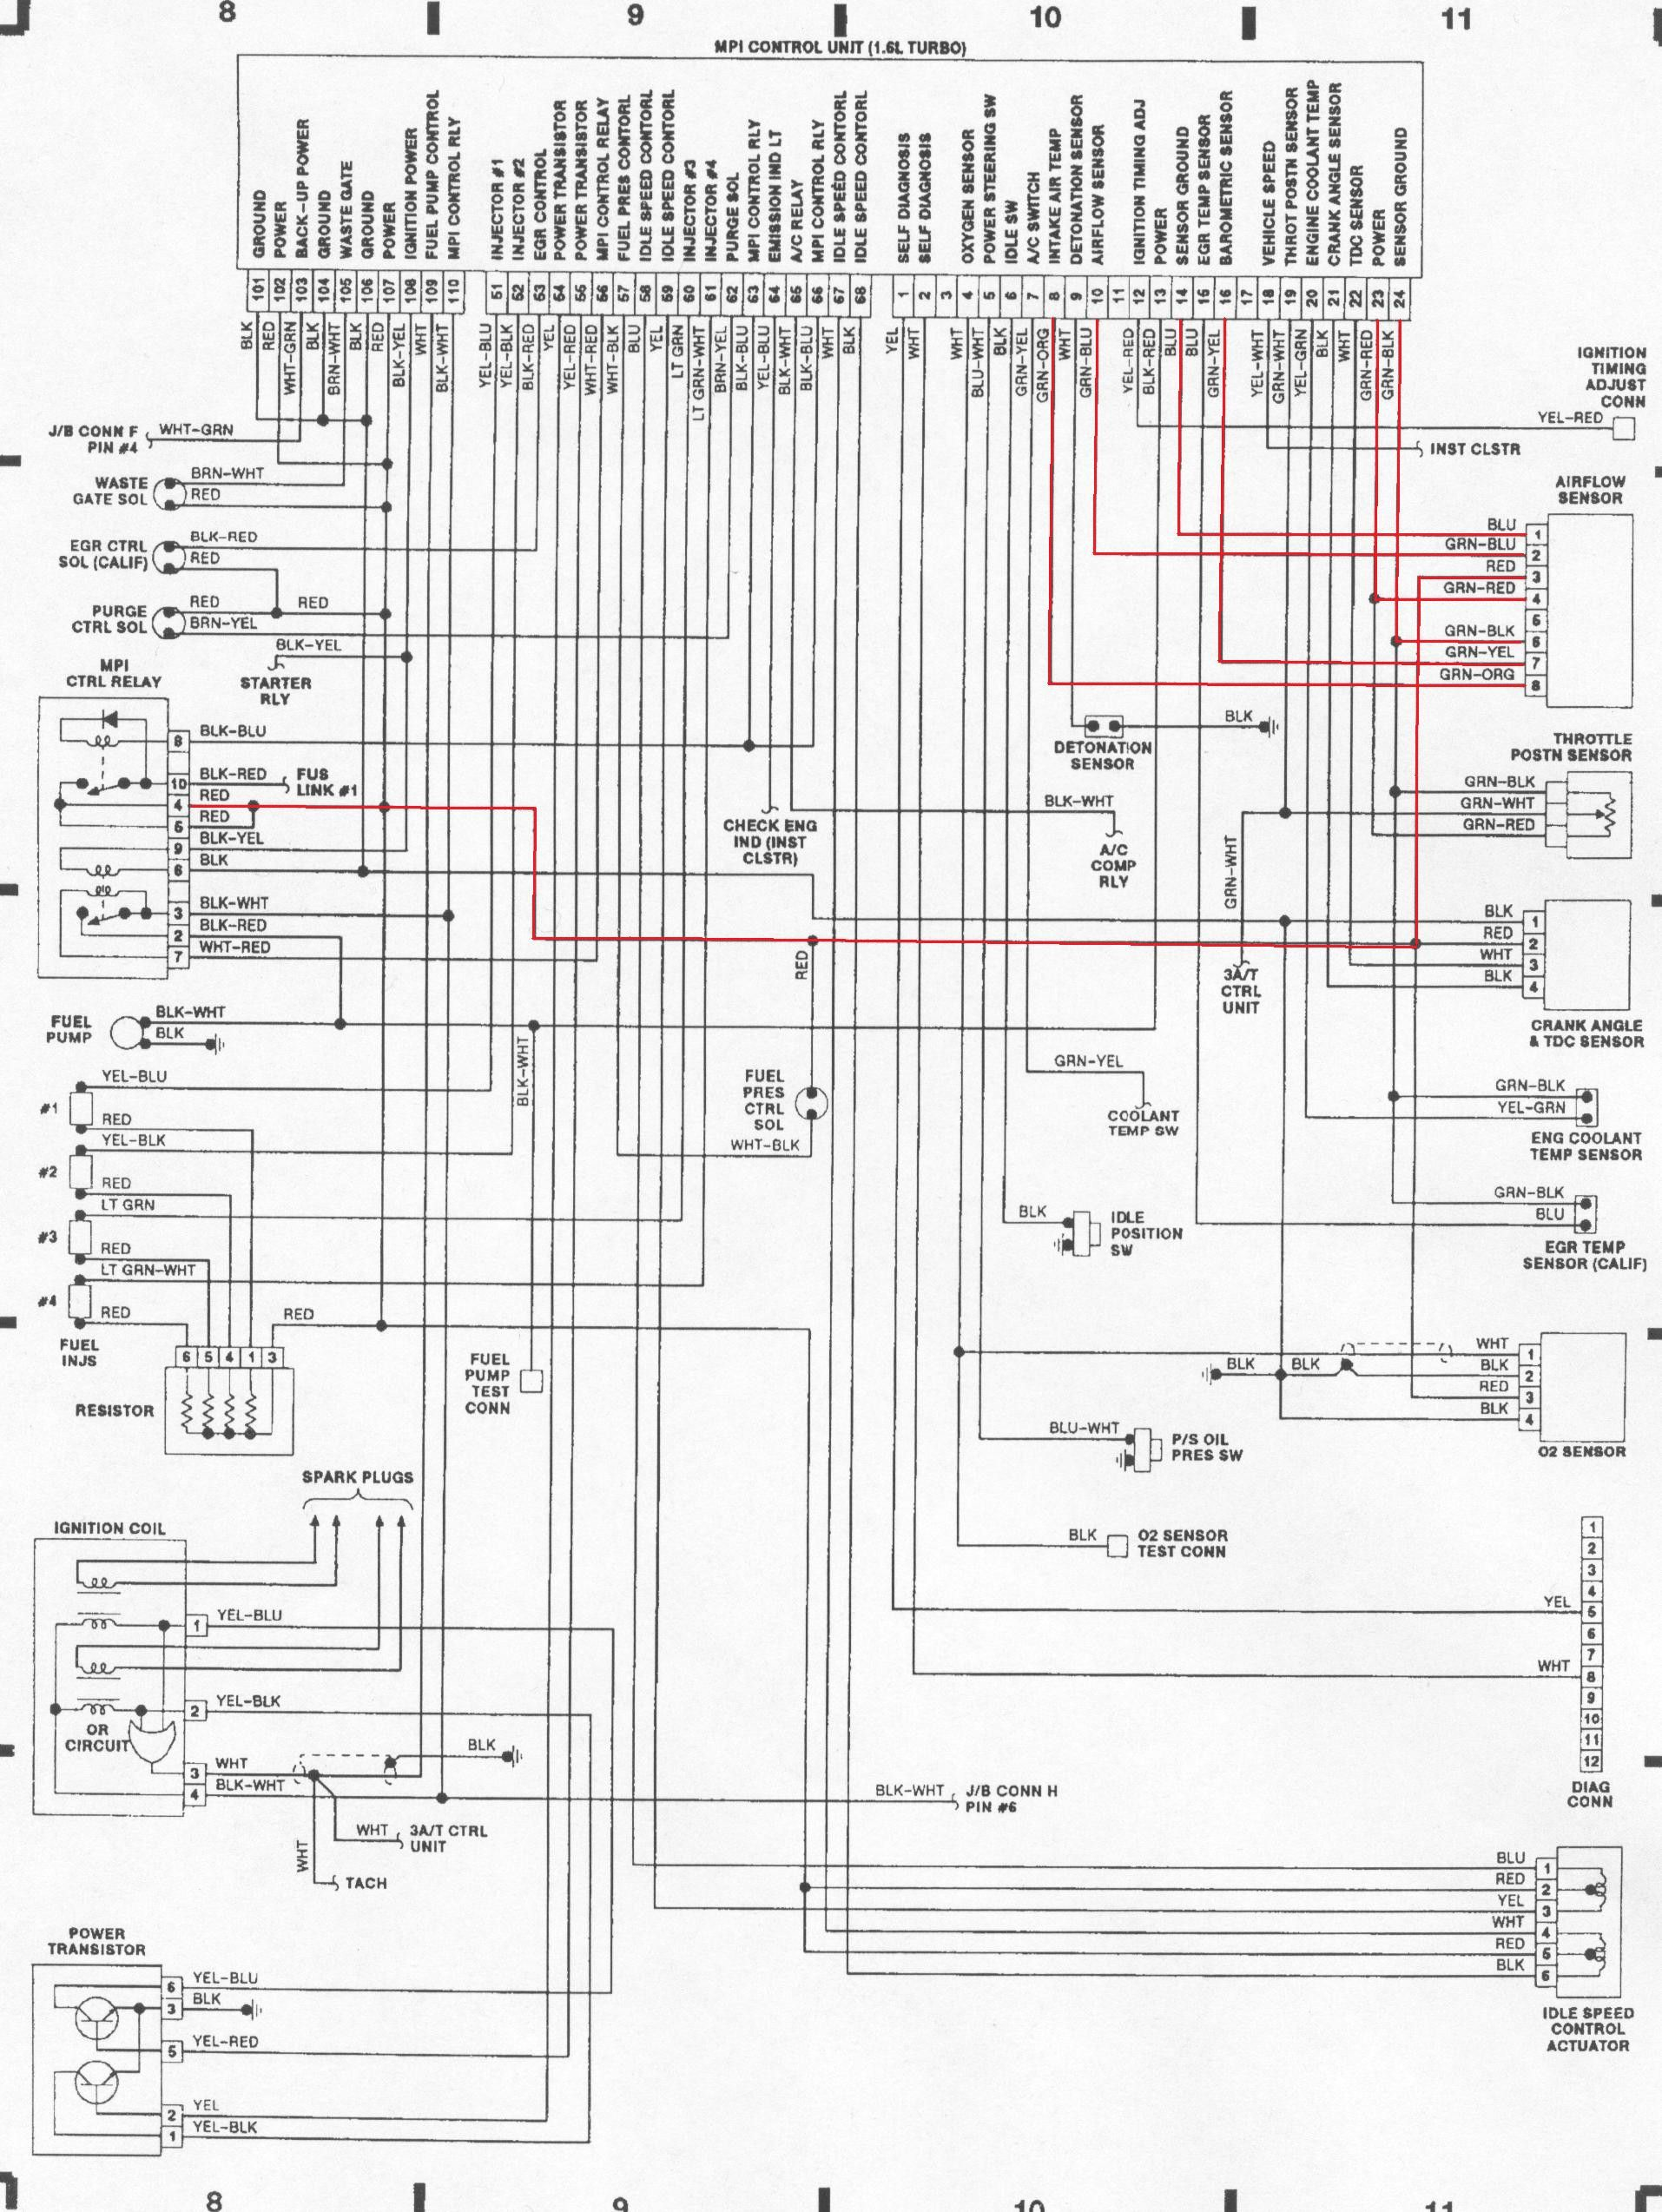 [DIAGRAM_4FR]  Wiring Diagram 4g15 Pdf Virtual Fretboard Inside Mitsubishi Mirage | Mitsubishi  mirage, Mitsubishi, Vw super beetle | 94 Mitsubishi Mirage Fuse Box |  | Pinterest